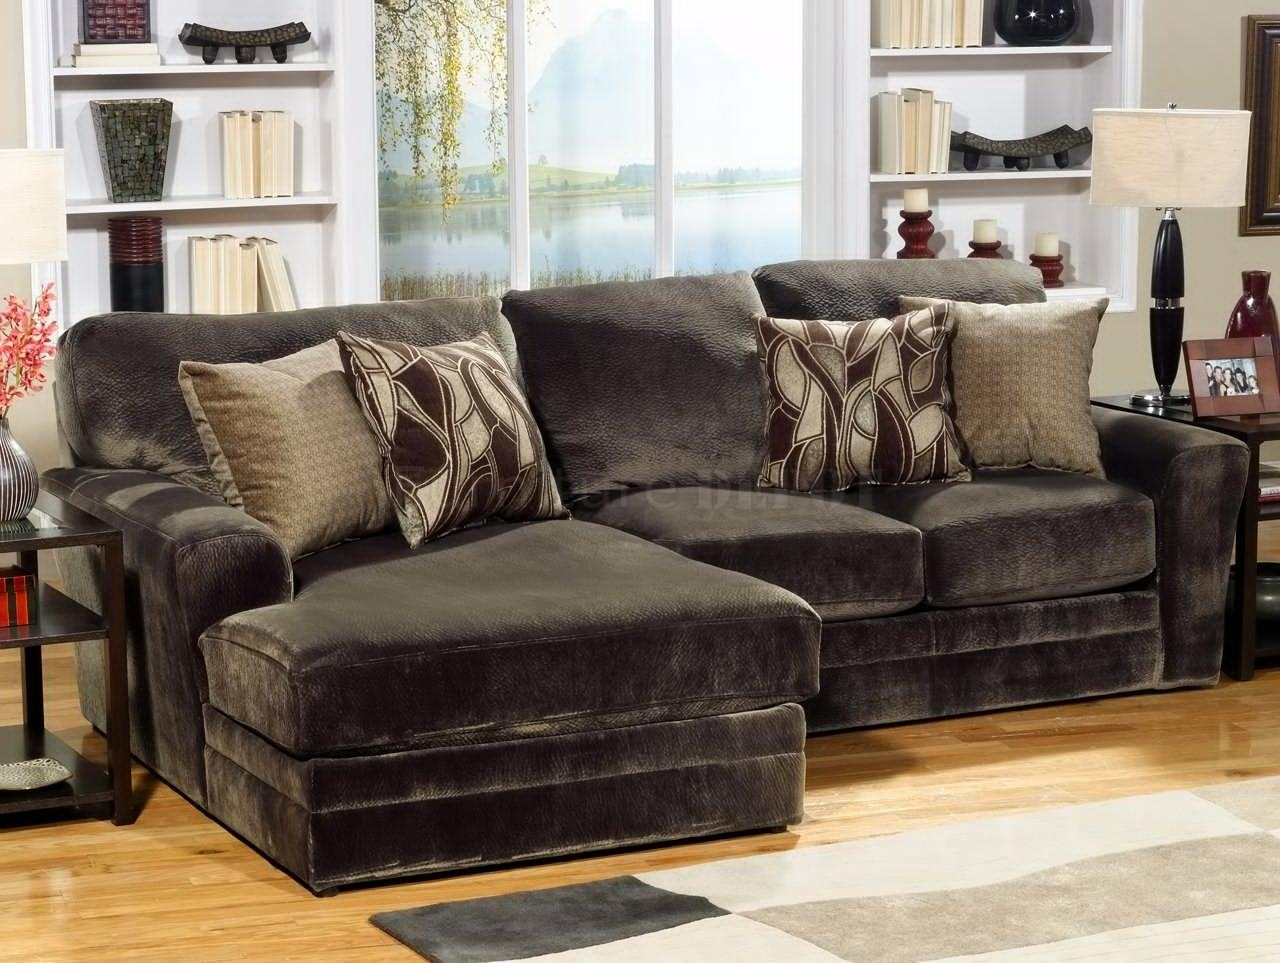 Lovely Gray Tufted Sectional Sofa 92 About Remodel Sectional Within Leather And Chenille Sectional (Image 15 of 20)